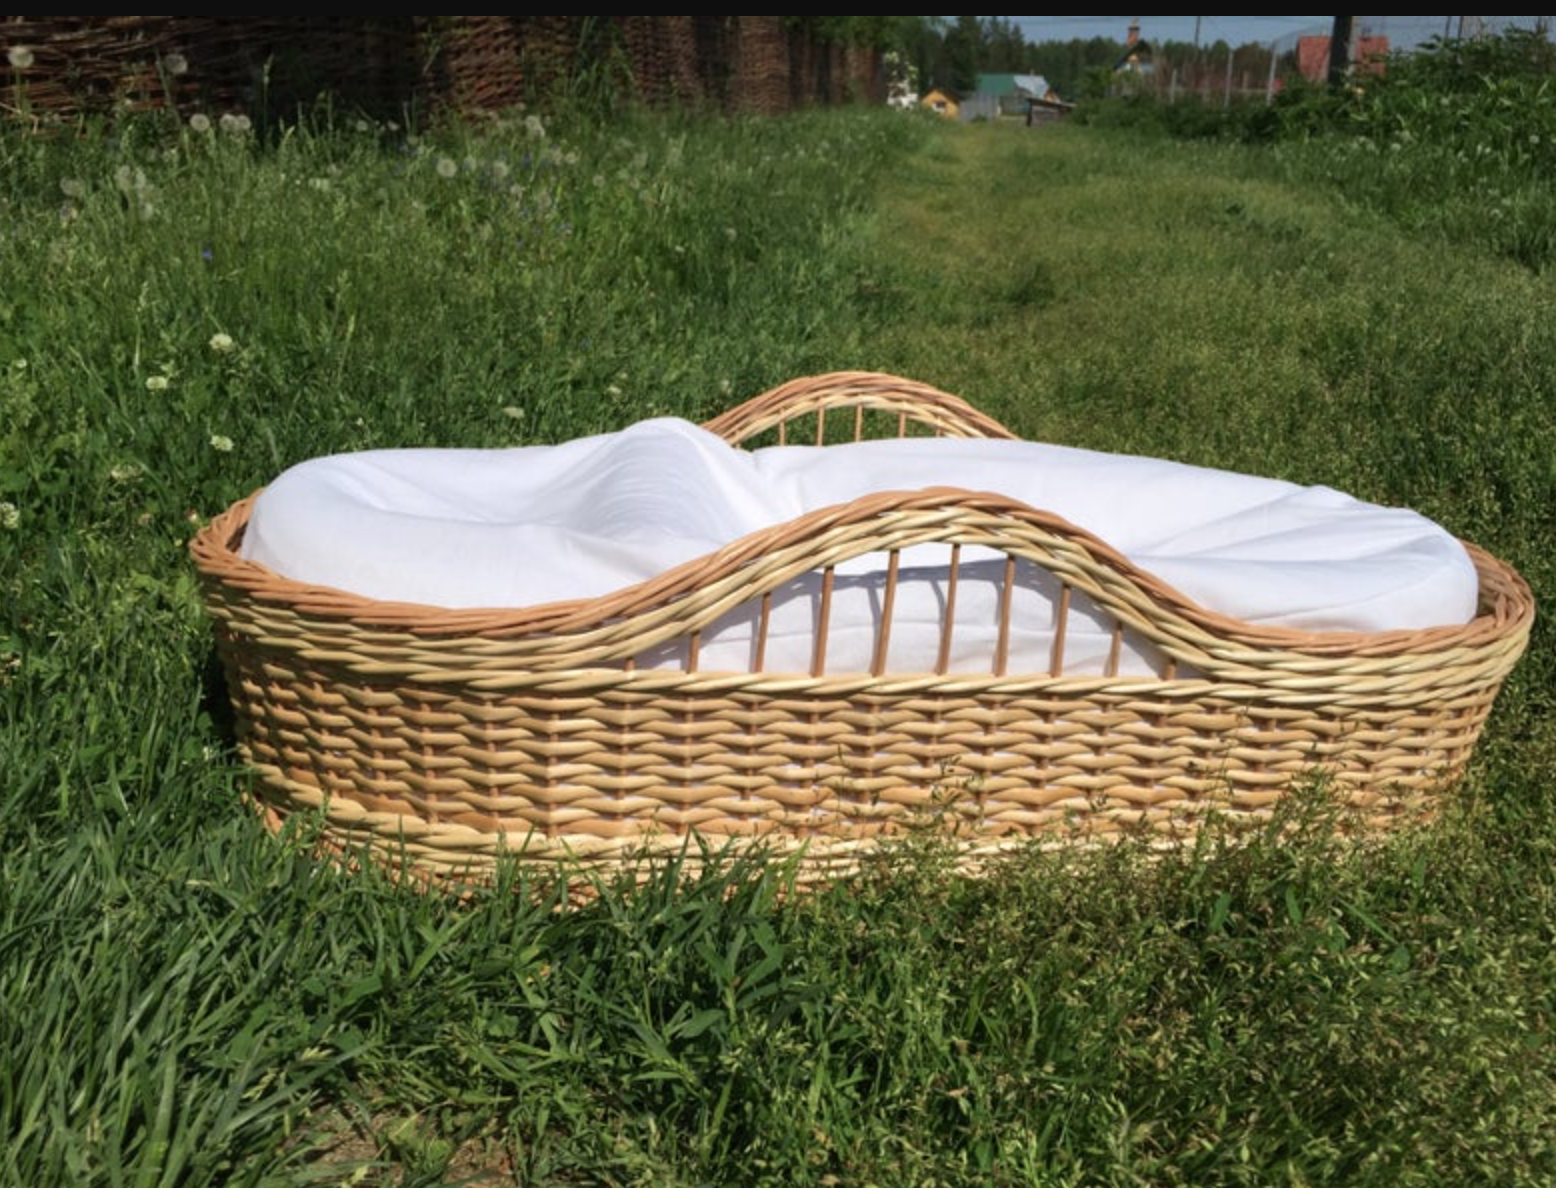 Rattan moses basket in a grassy field